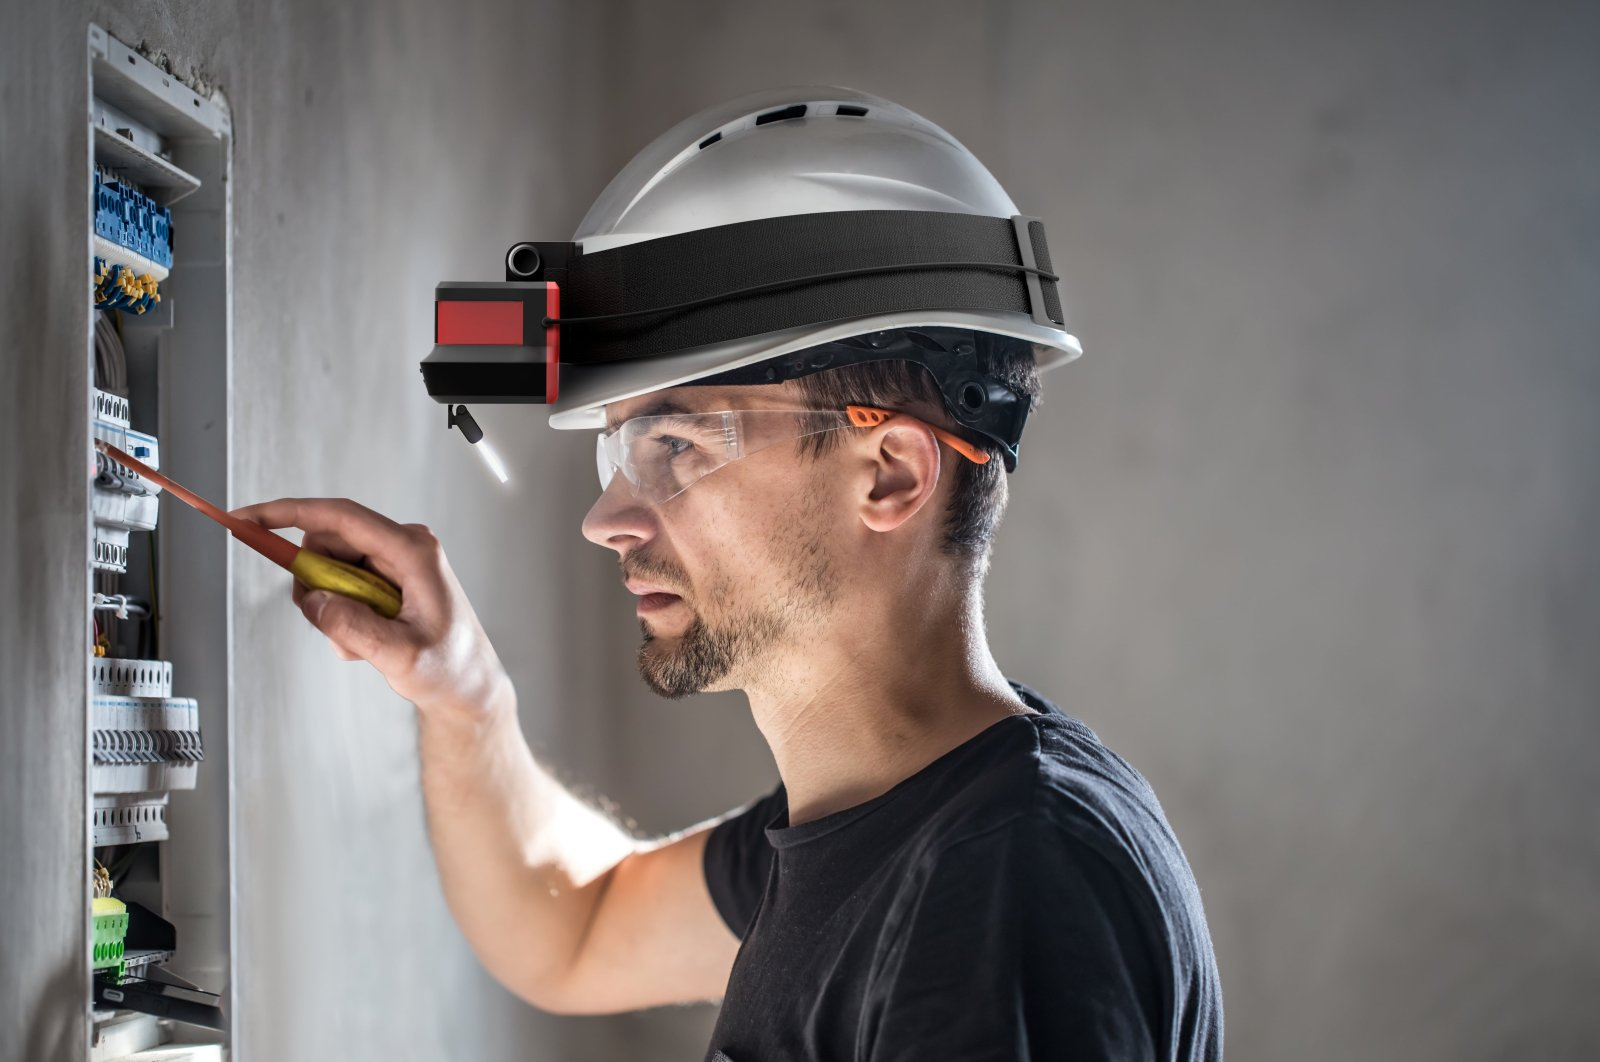 Augmency provides industrial companies with wearable augmented reality devices and software solutions.